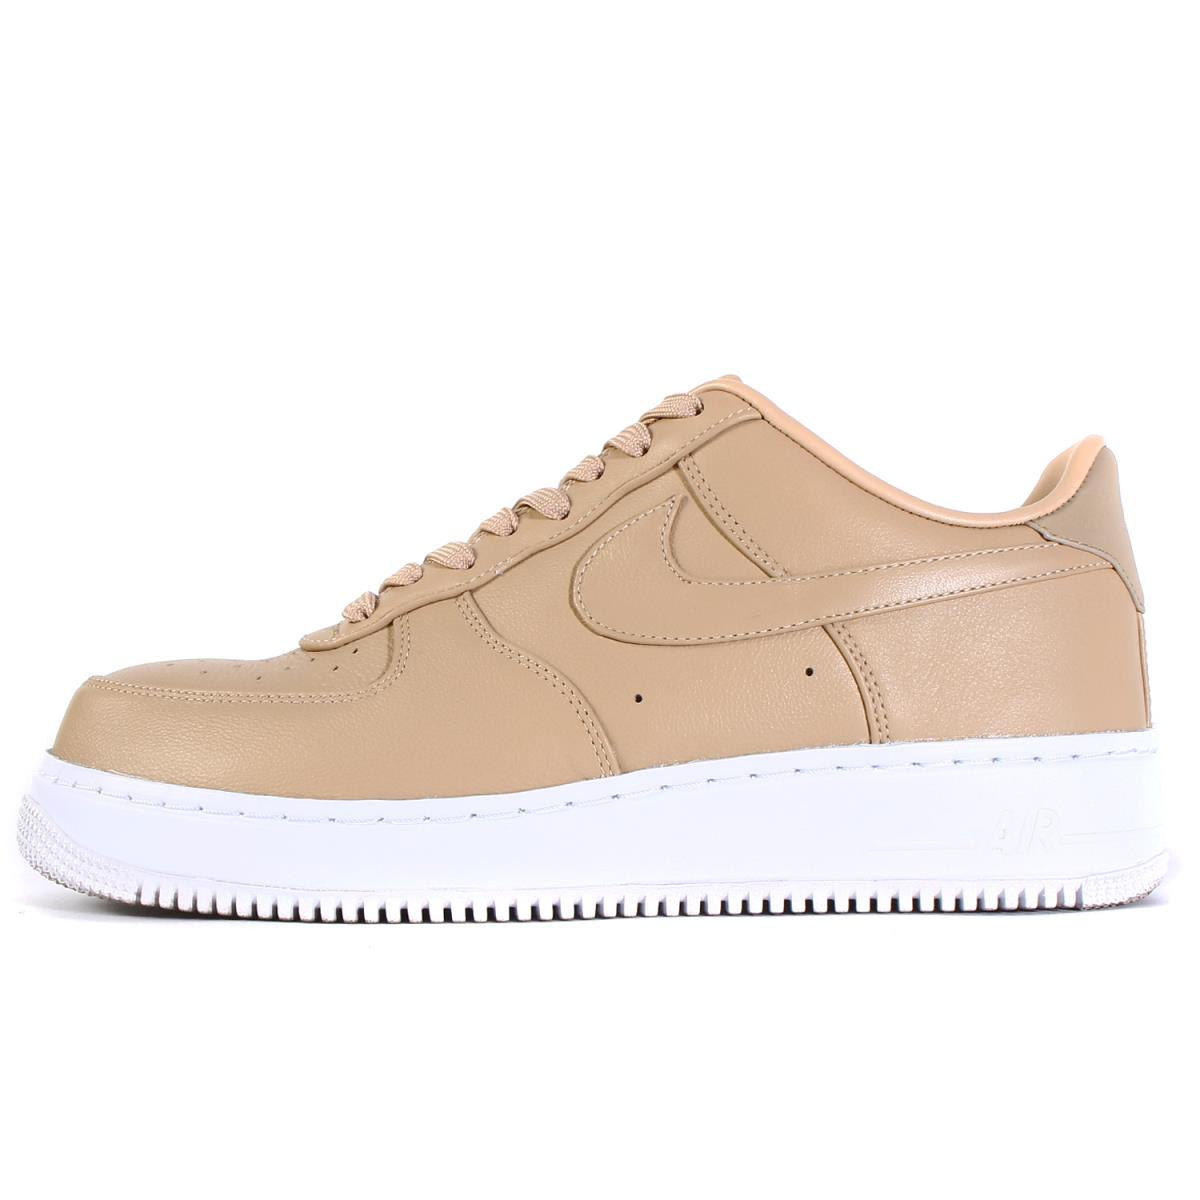 new arrival afc91 52912 NIKE (Nike) NIKELAB AIR FORCE 1 LOW (/ 555,106-200 made in 2016) pail  tongue US10(28cm)